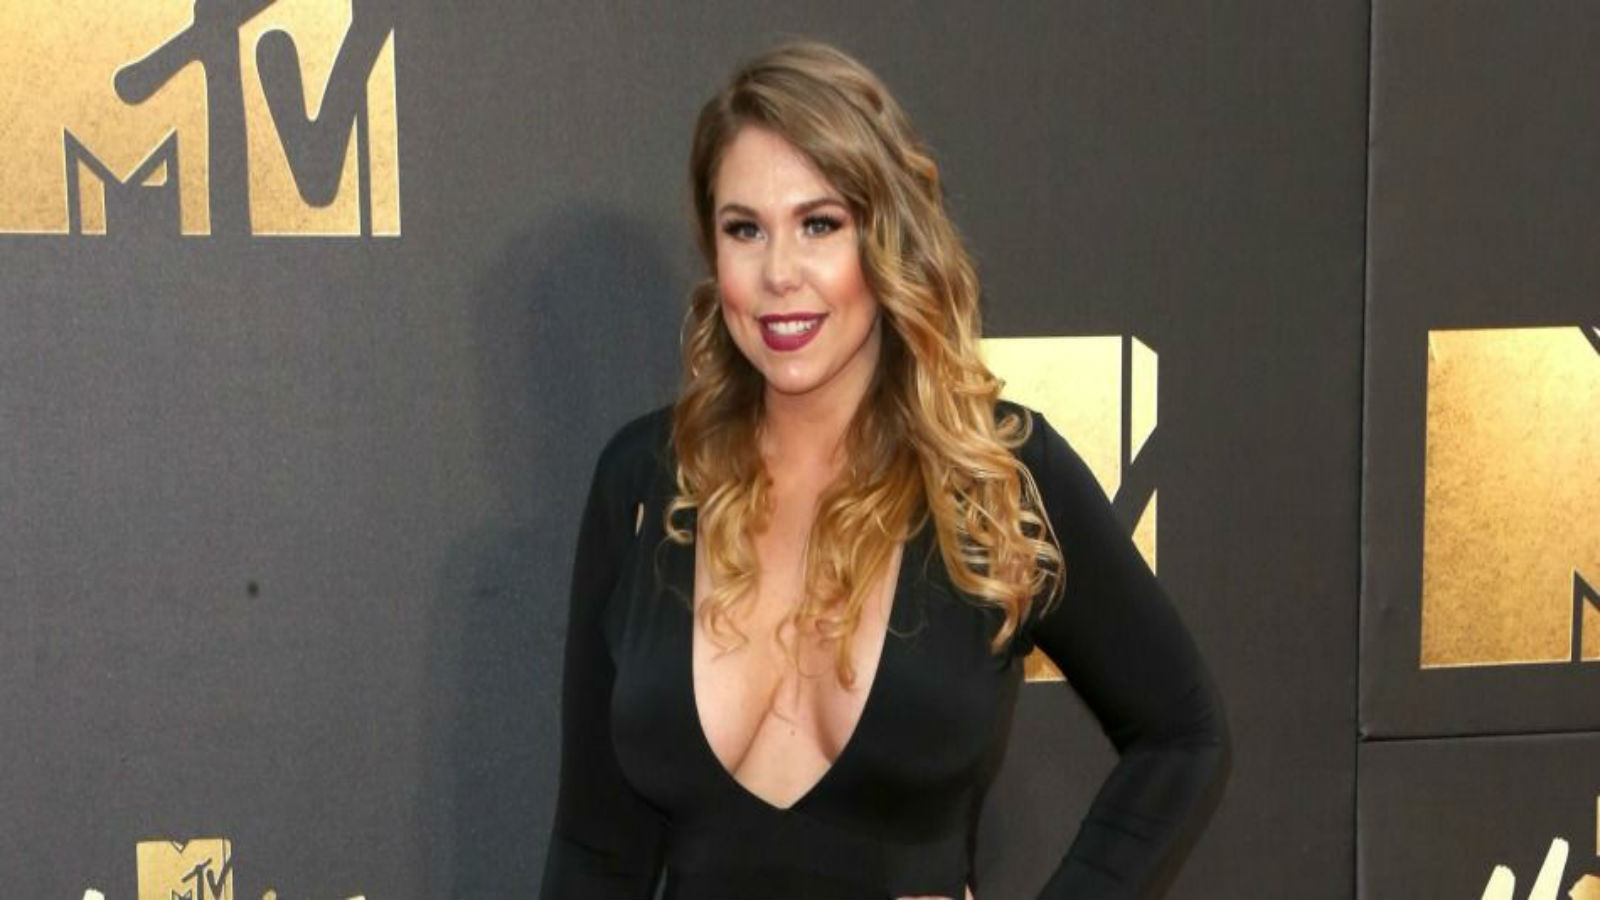 Kailyn Lowry heads to Miami for plastic surgery, but ends up backing out